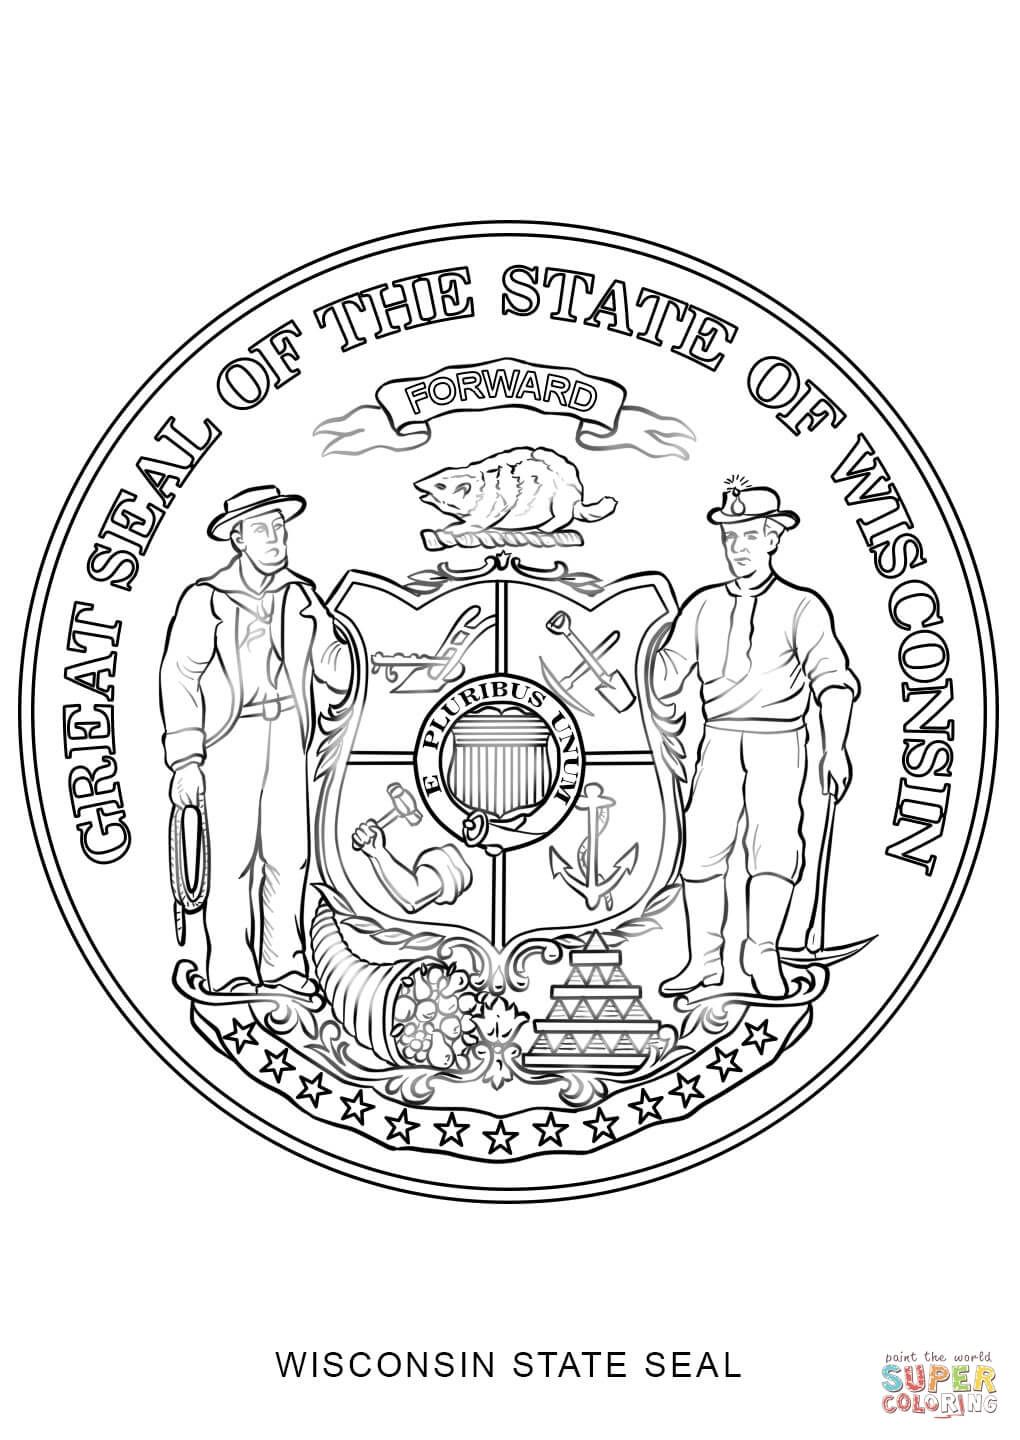 Wisconsin State Seal Coloring Page From Wisconsin Category Select